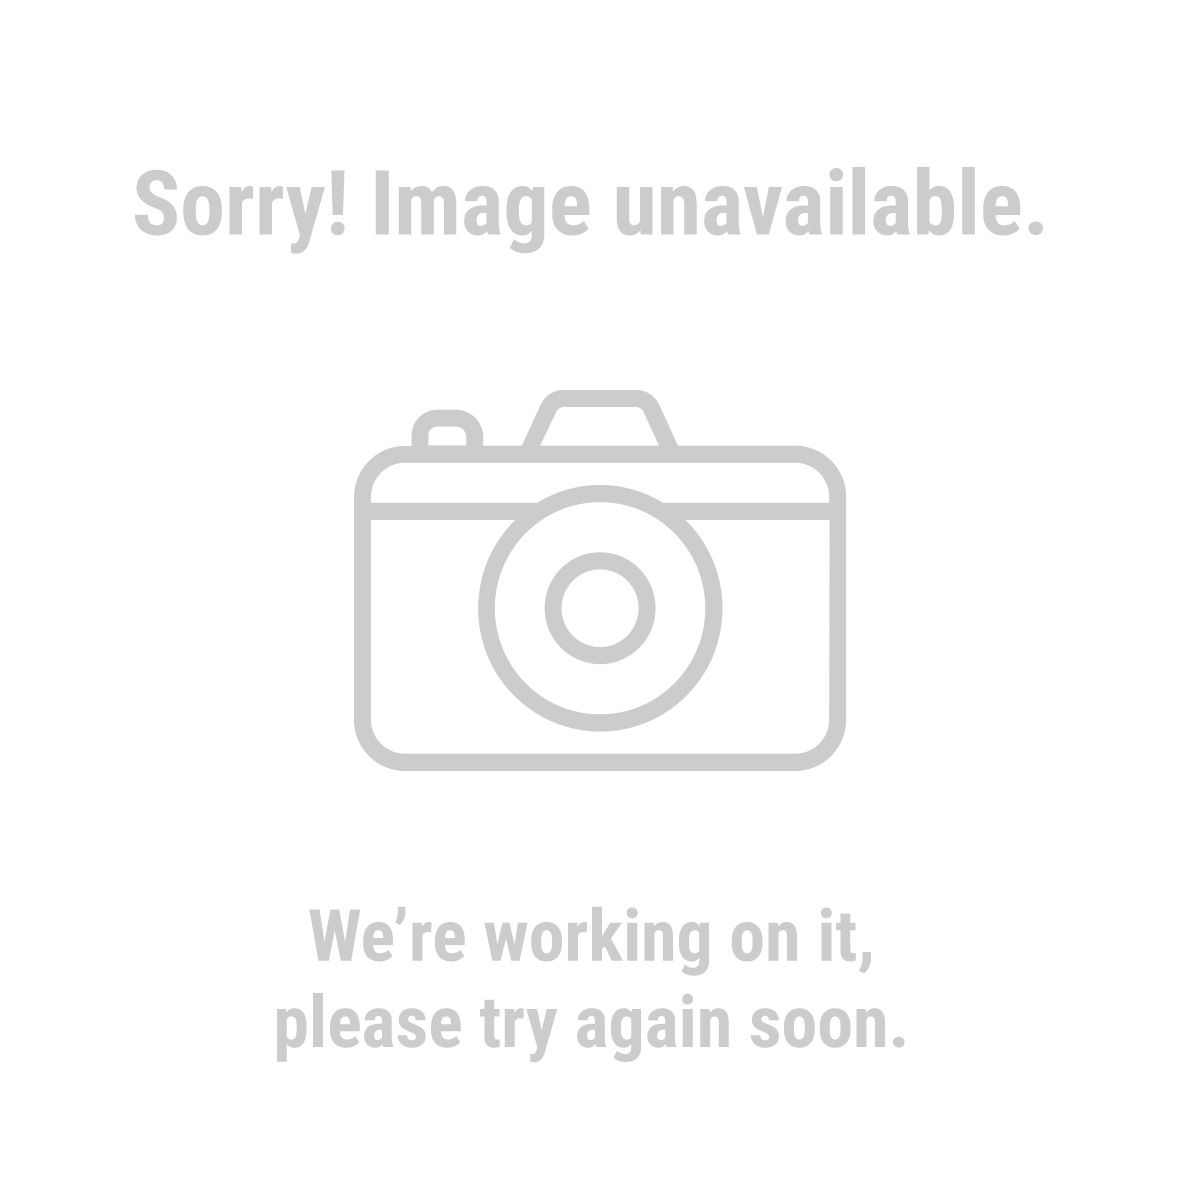 Inside Track Club 403 1-Year Inside Track Club Membership